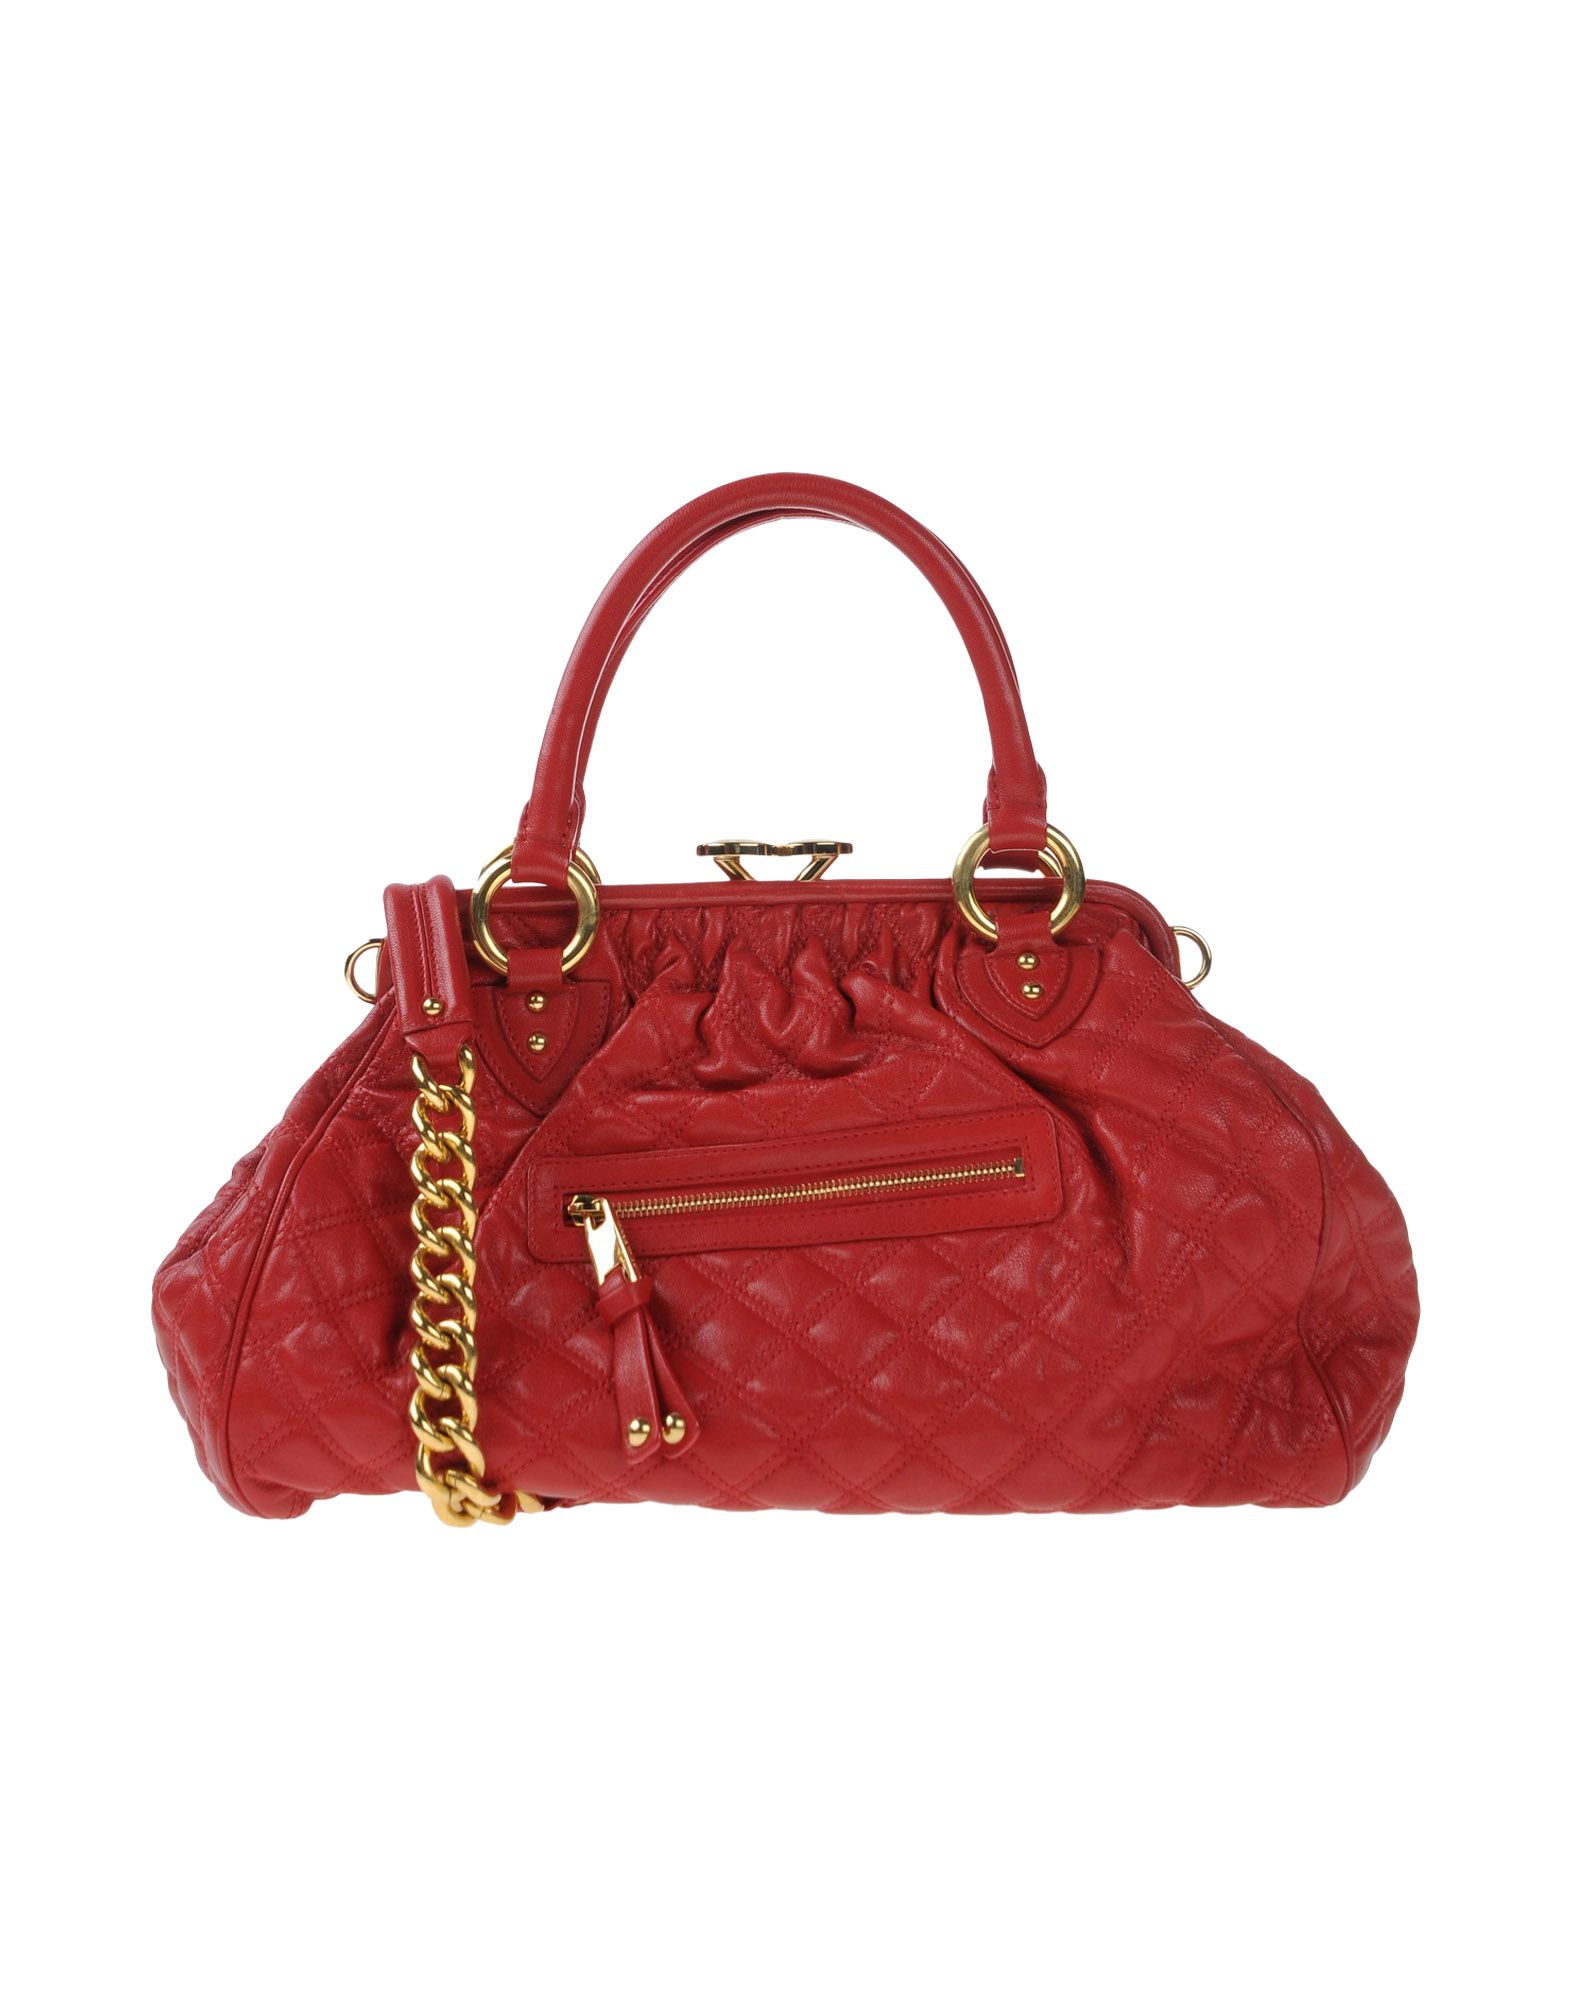 Marc Jacobs Handbag In Red Lyst